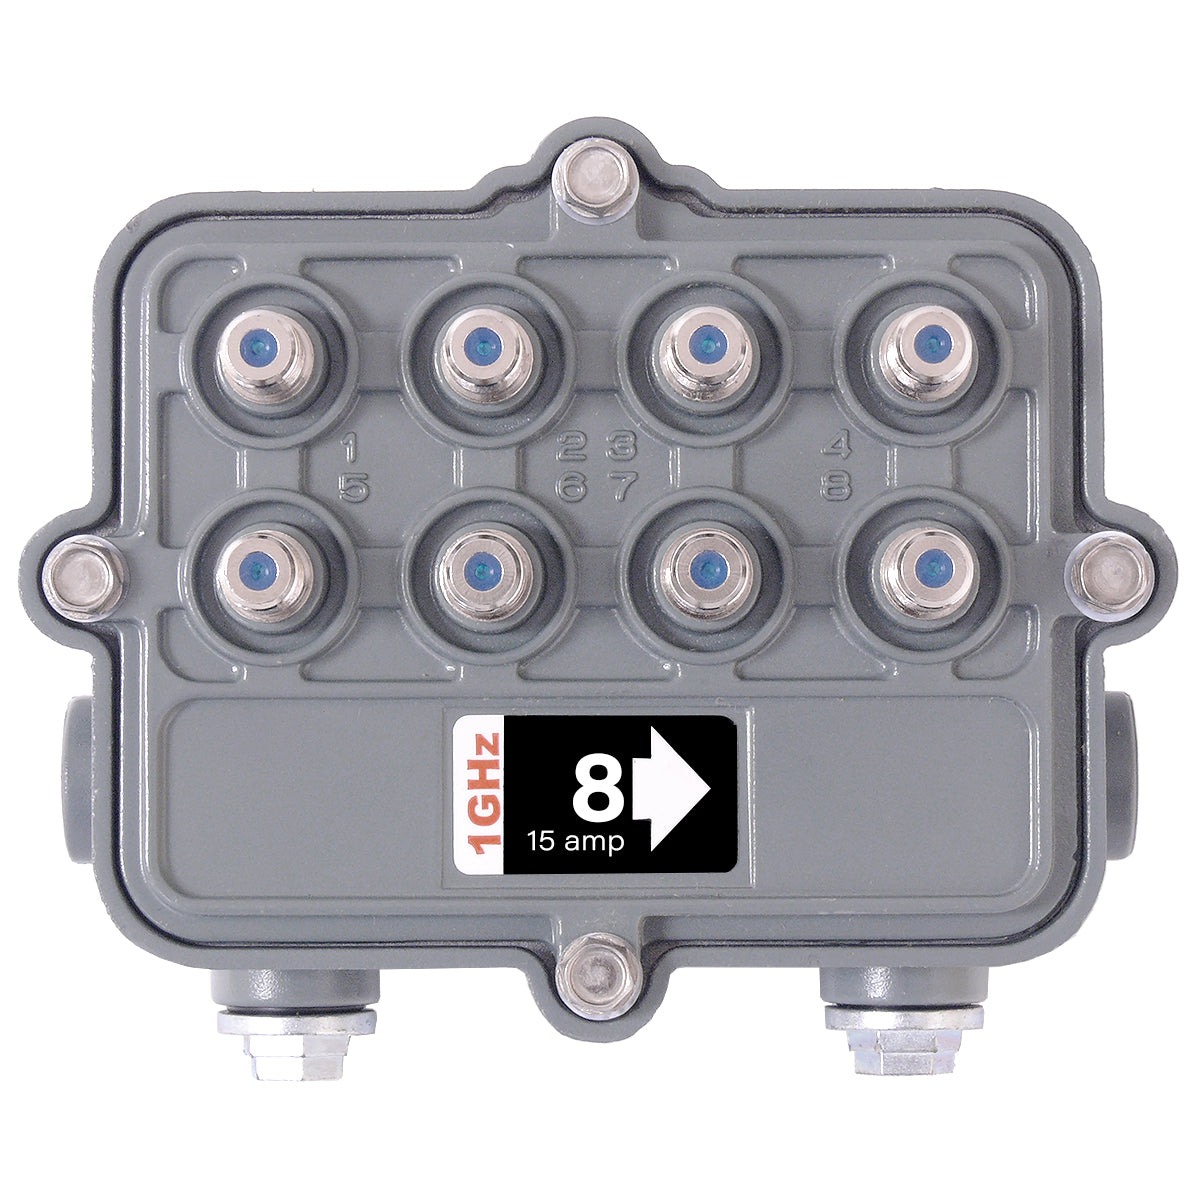 SB-8/08G/SR 1GHz Outdoor Hardline Multitap 8 Way 8dB